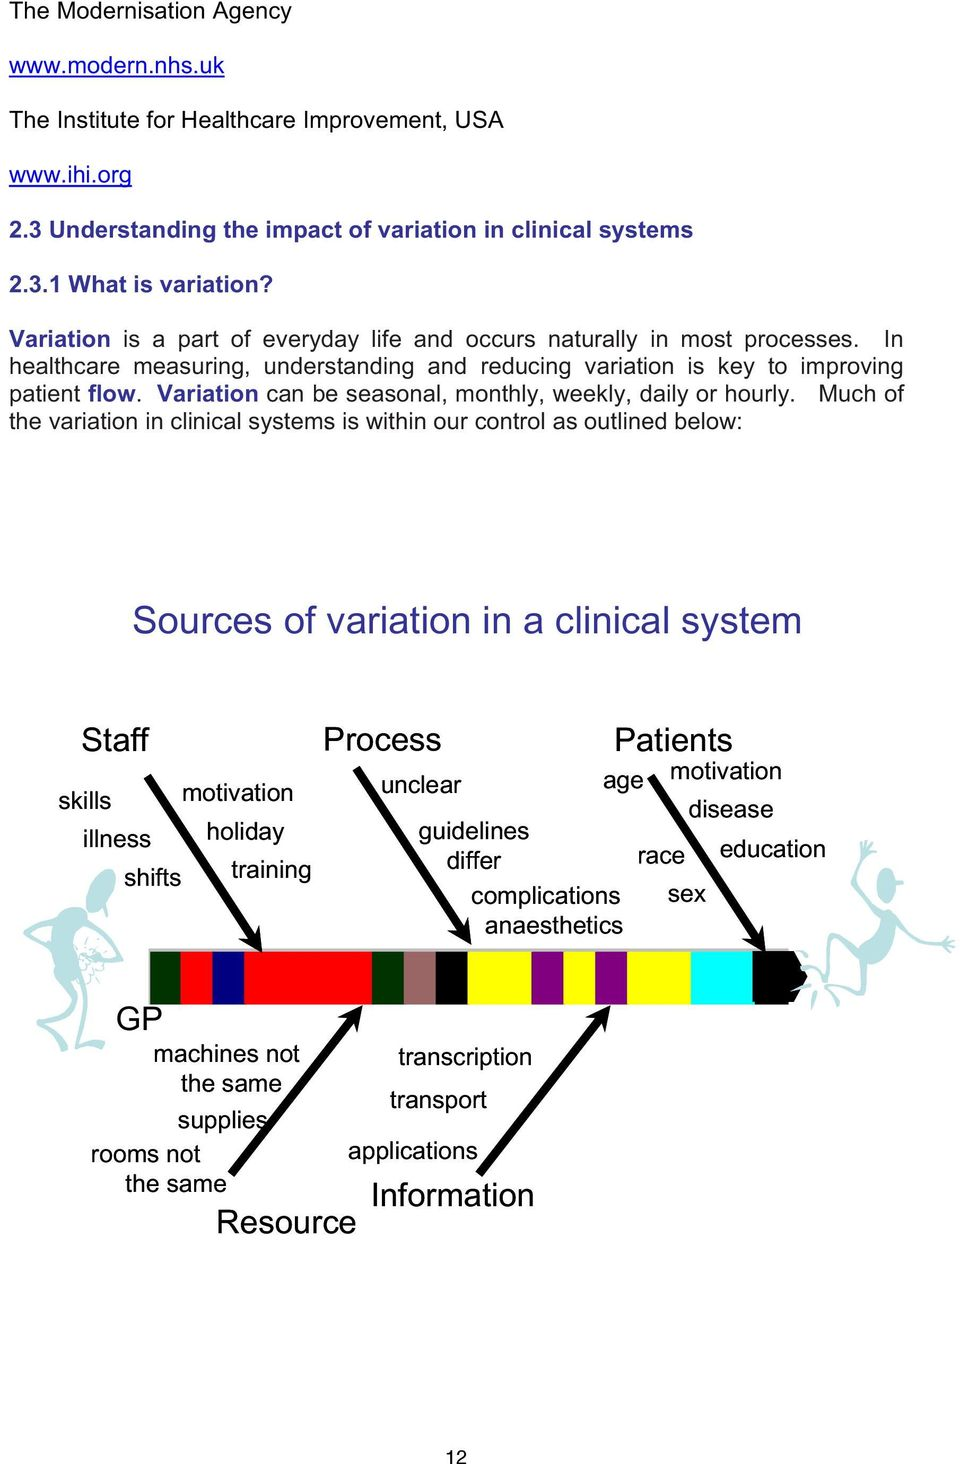 Variation can be seasonal, monthly, weekly, daily or hourly. Much of the variation in clinical systems is within our control as outlined below: 2.3.